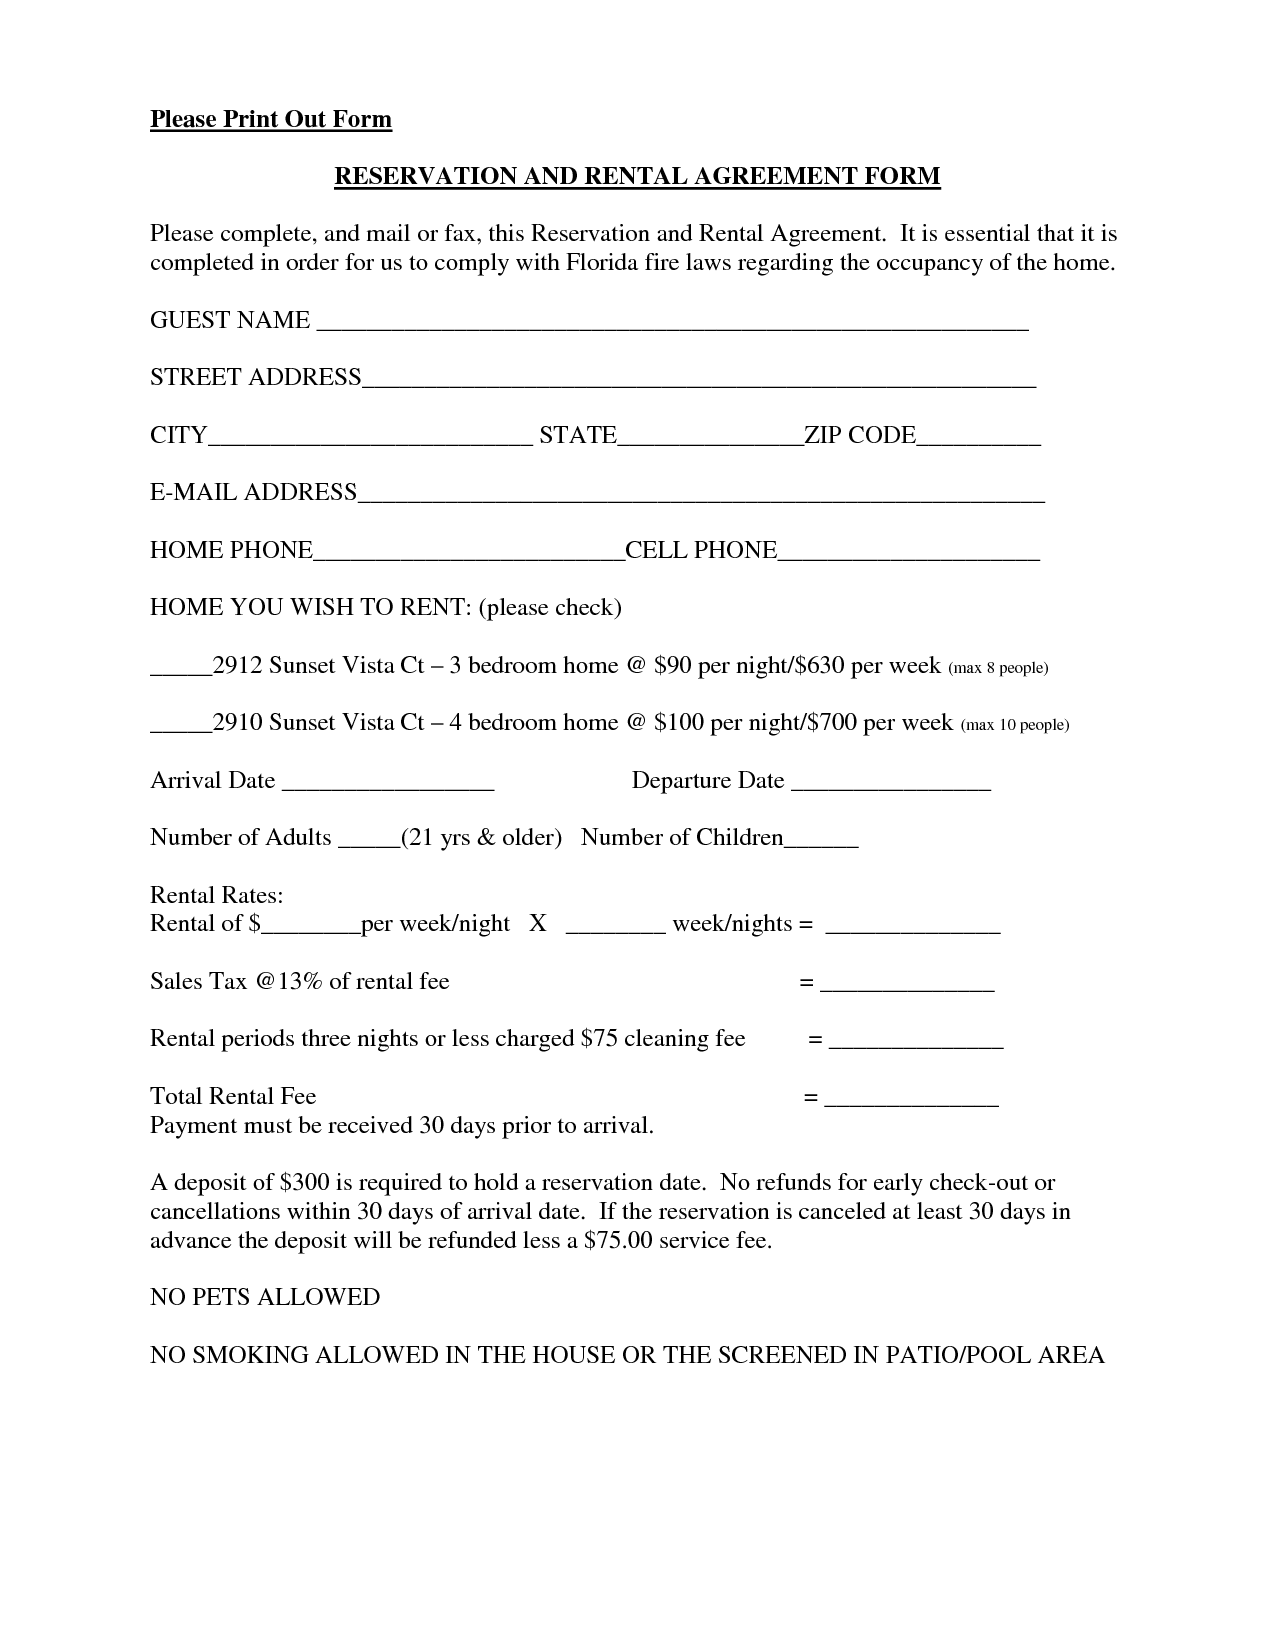 Free Lease Agreement Template For Renting A Room  Forum  Lease